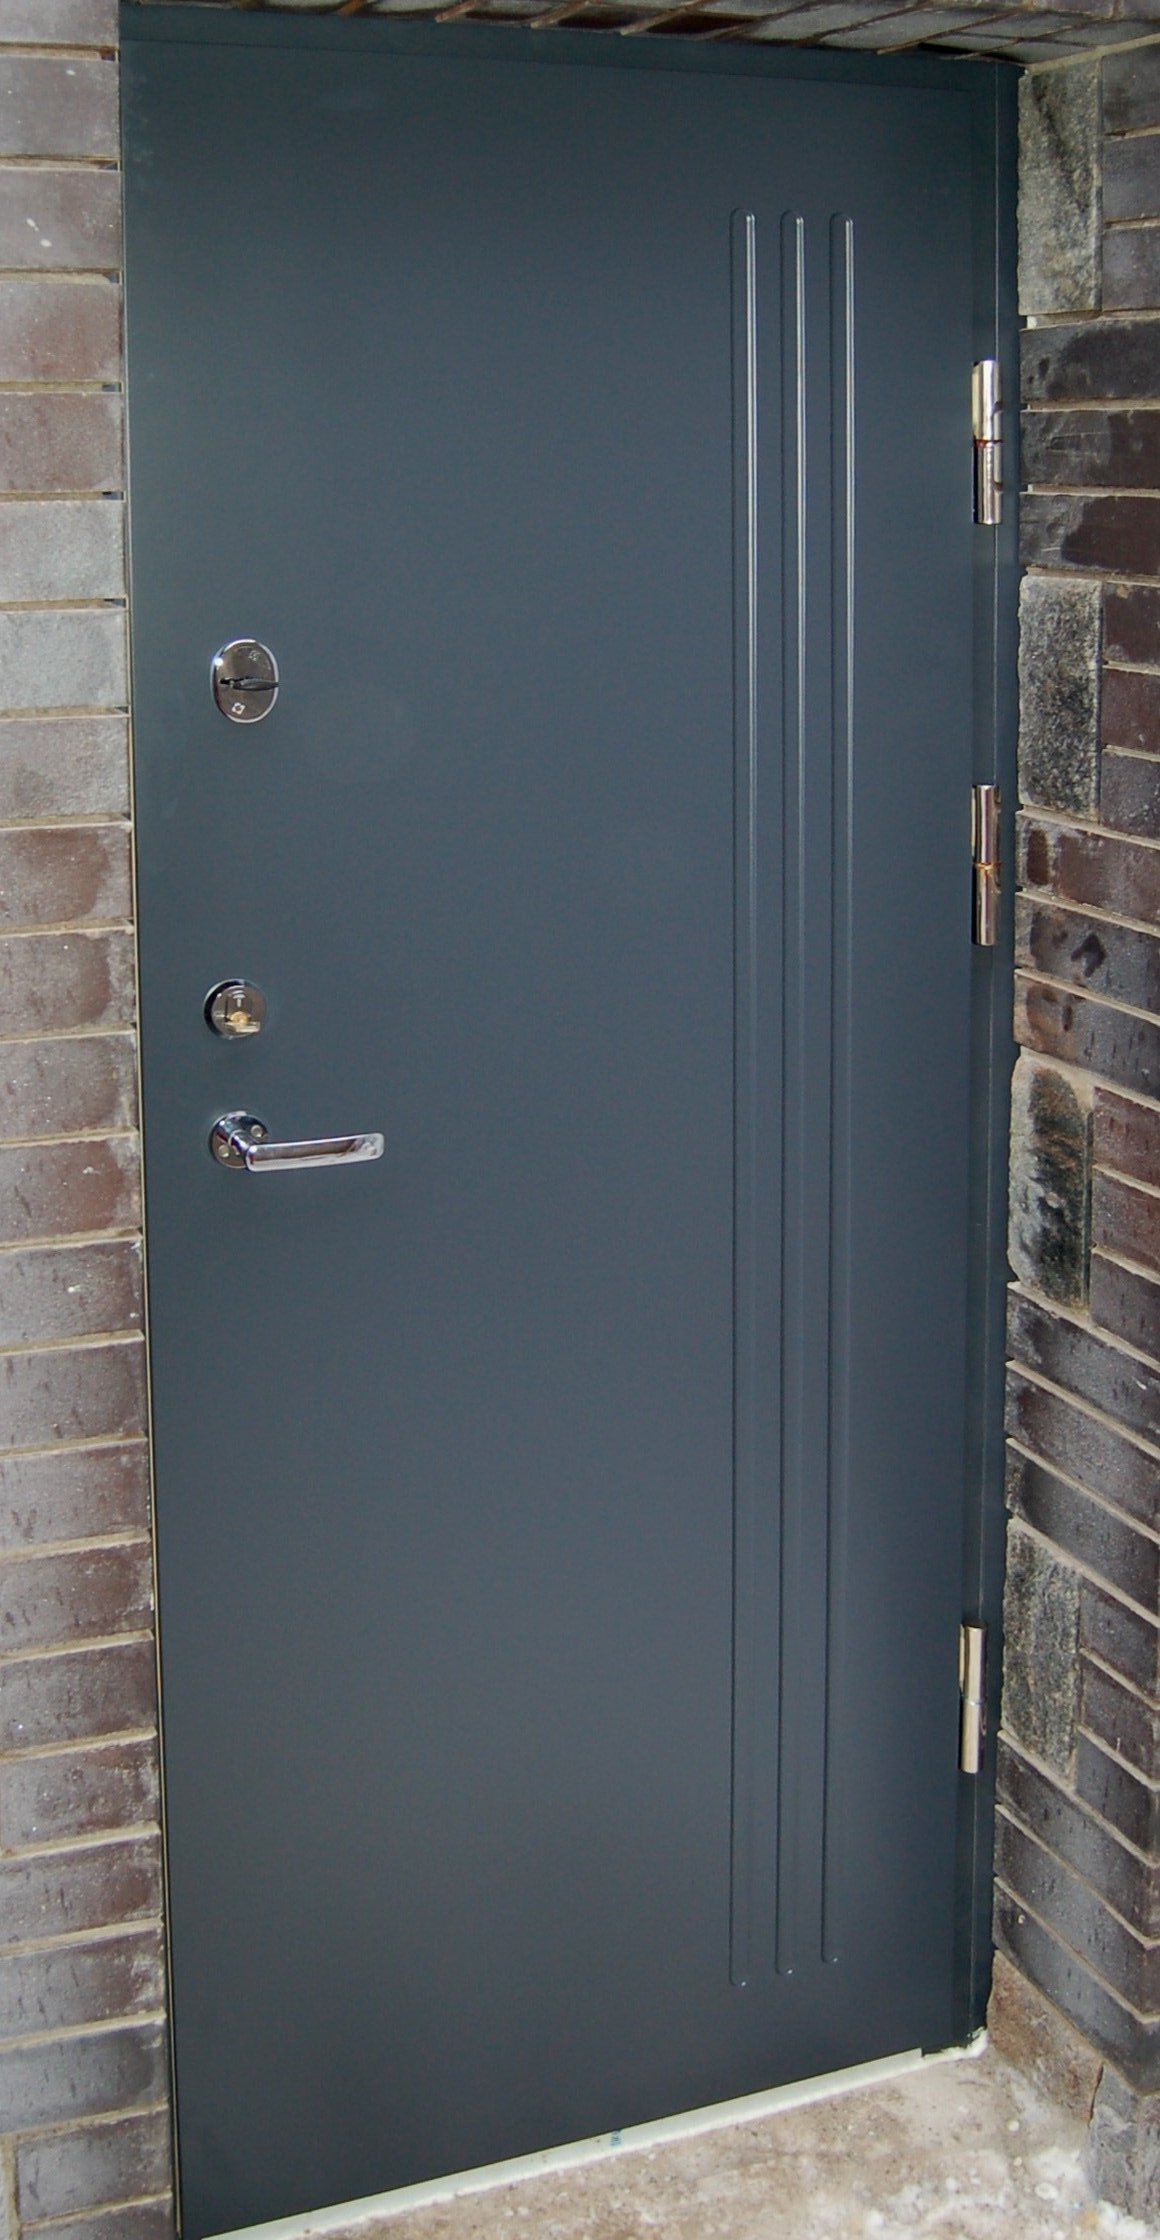 Aluminum Security Doors : Seciro metal security doors